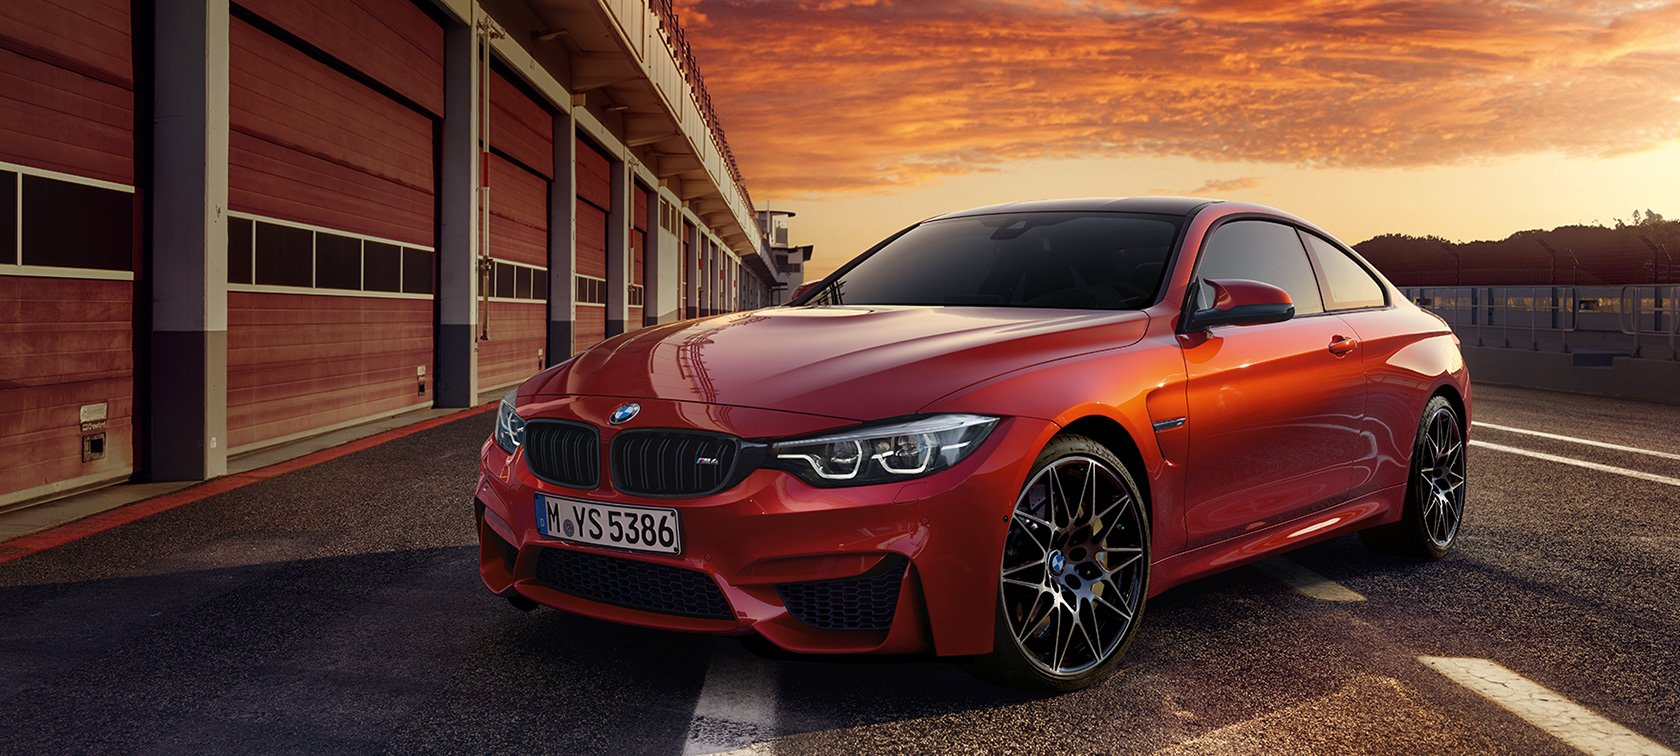 Bmw M4 Coupe >> Bmw M4 Coupe Design